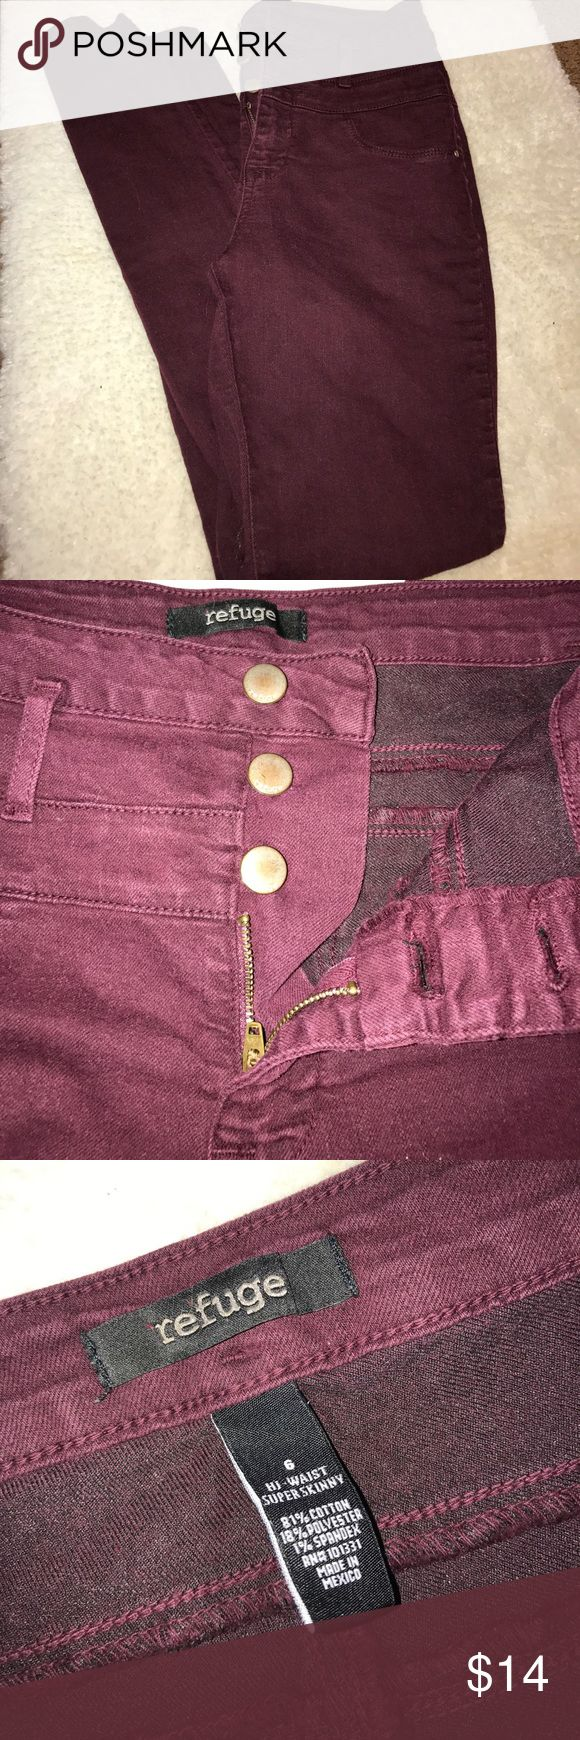 Burgundy high waisted jeans Burgundy high waisted jeans from Charlotte Rouse. Worn once. Great condition! Charolette Rouse Jeans